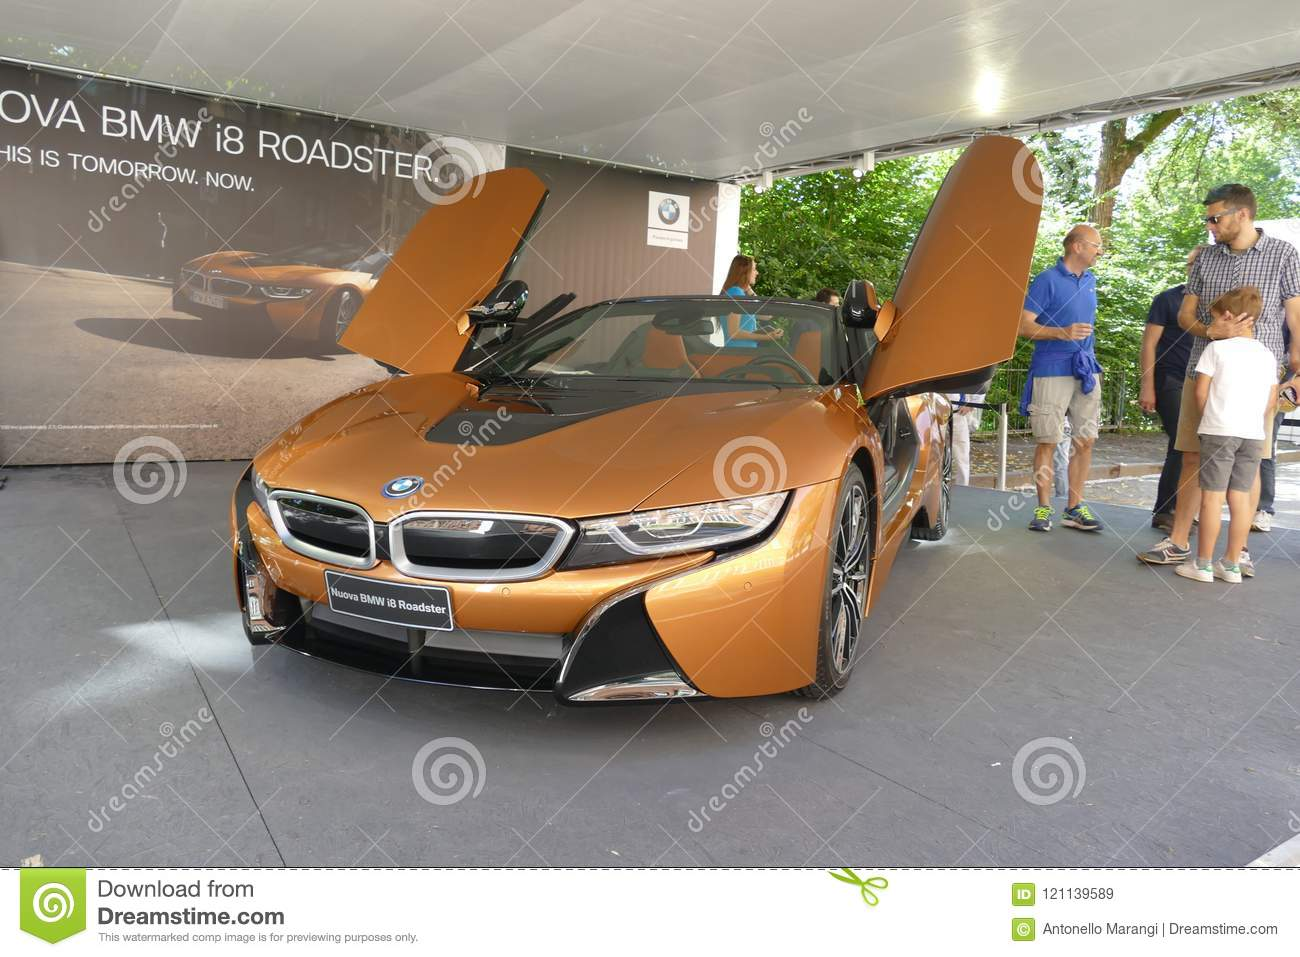 Bmw I8 Supercar Turin Italy June 6 2018 Editorial Stock Image